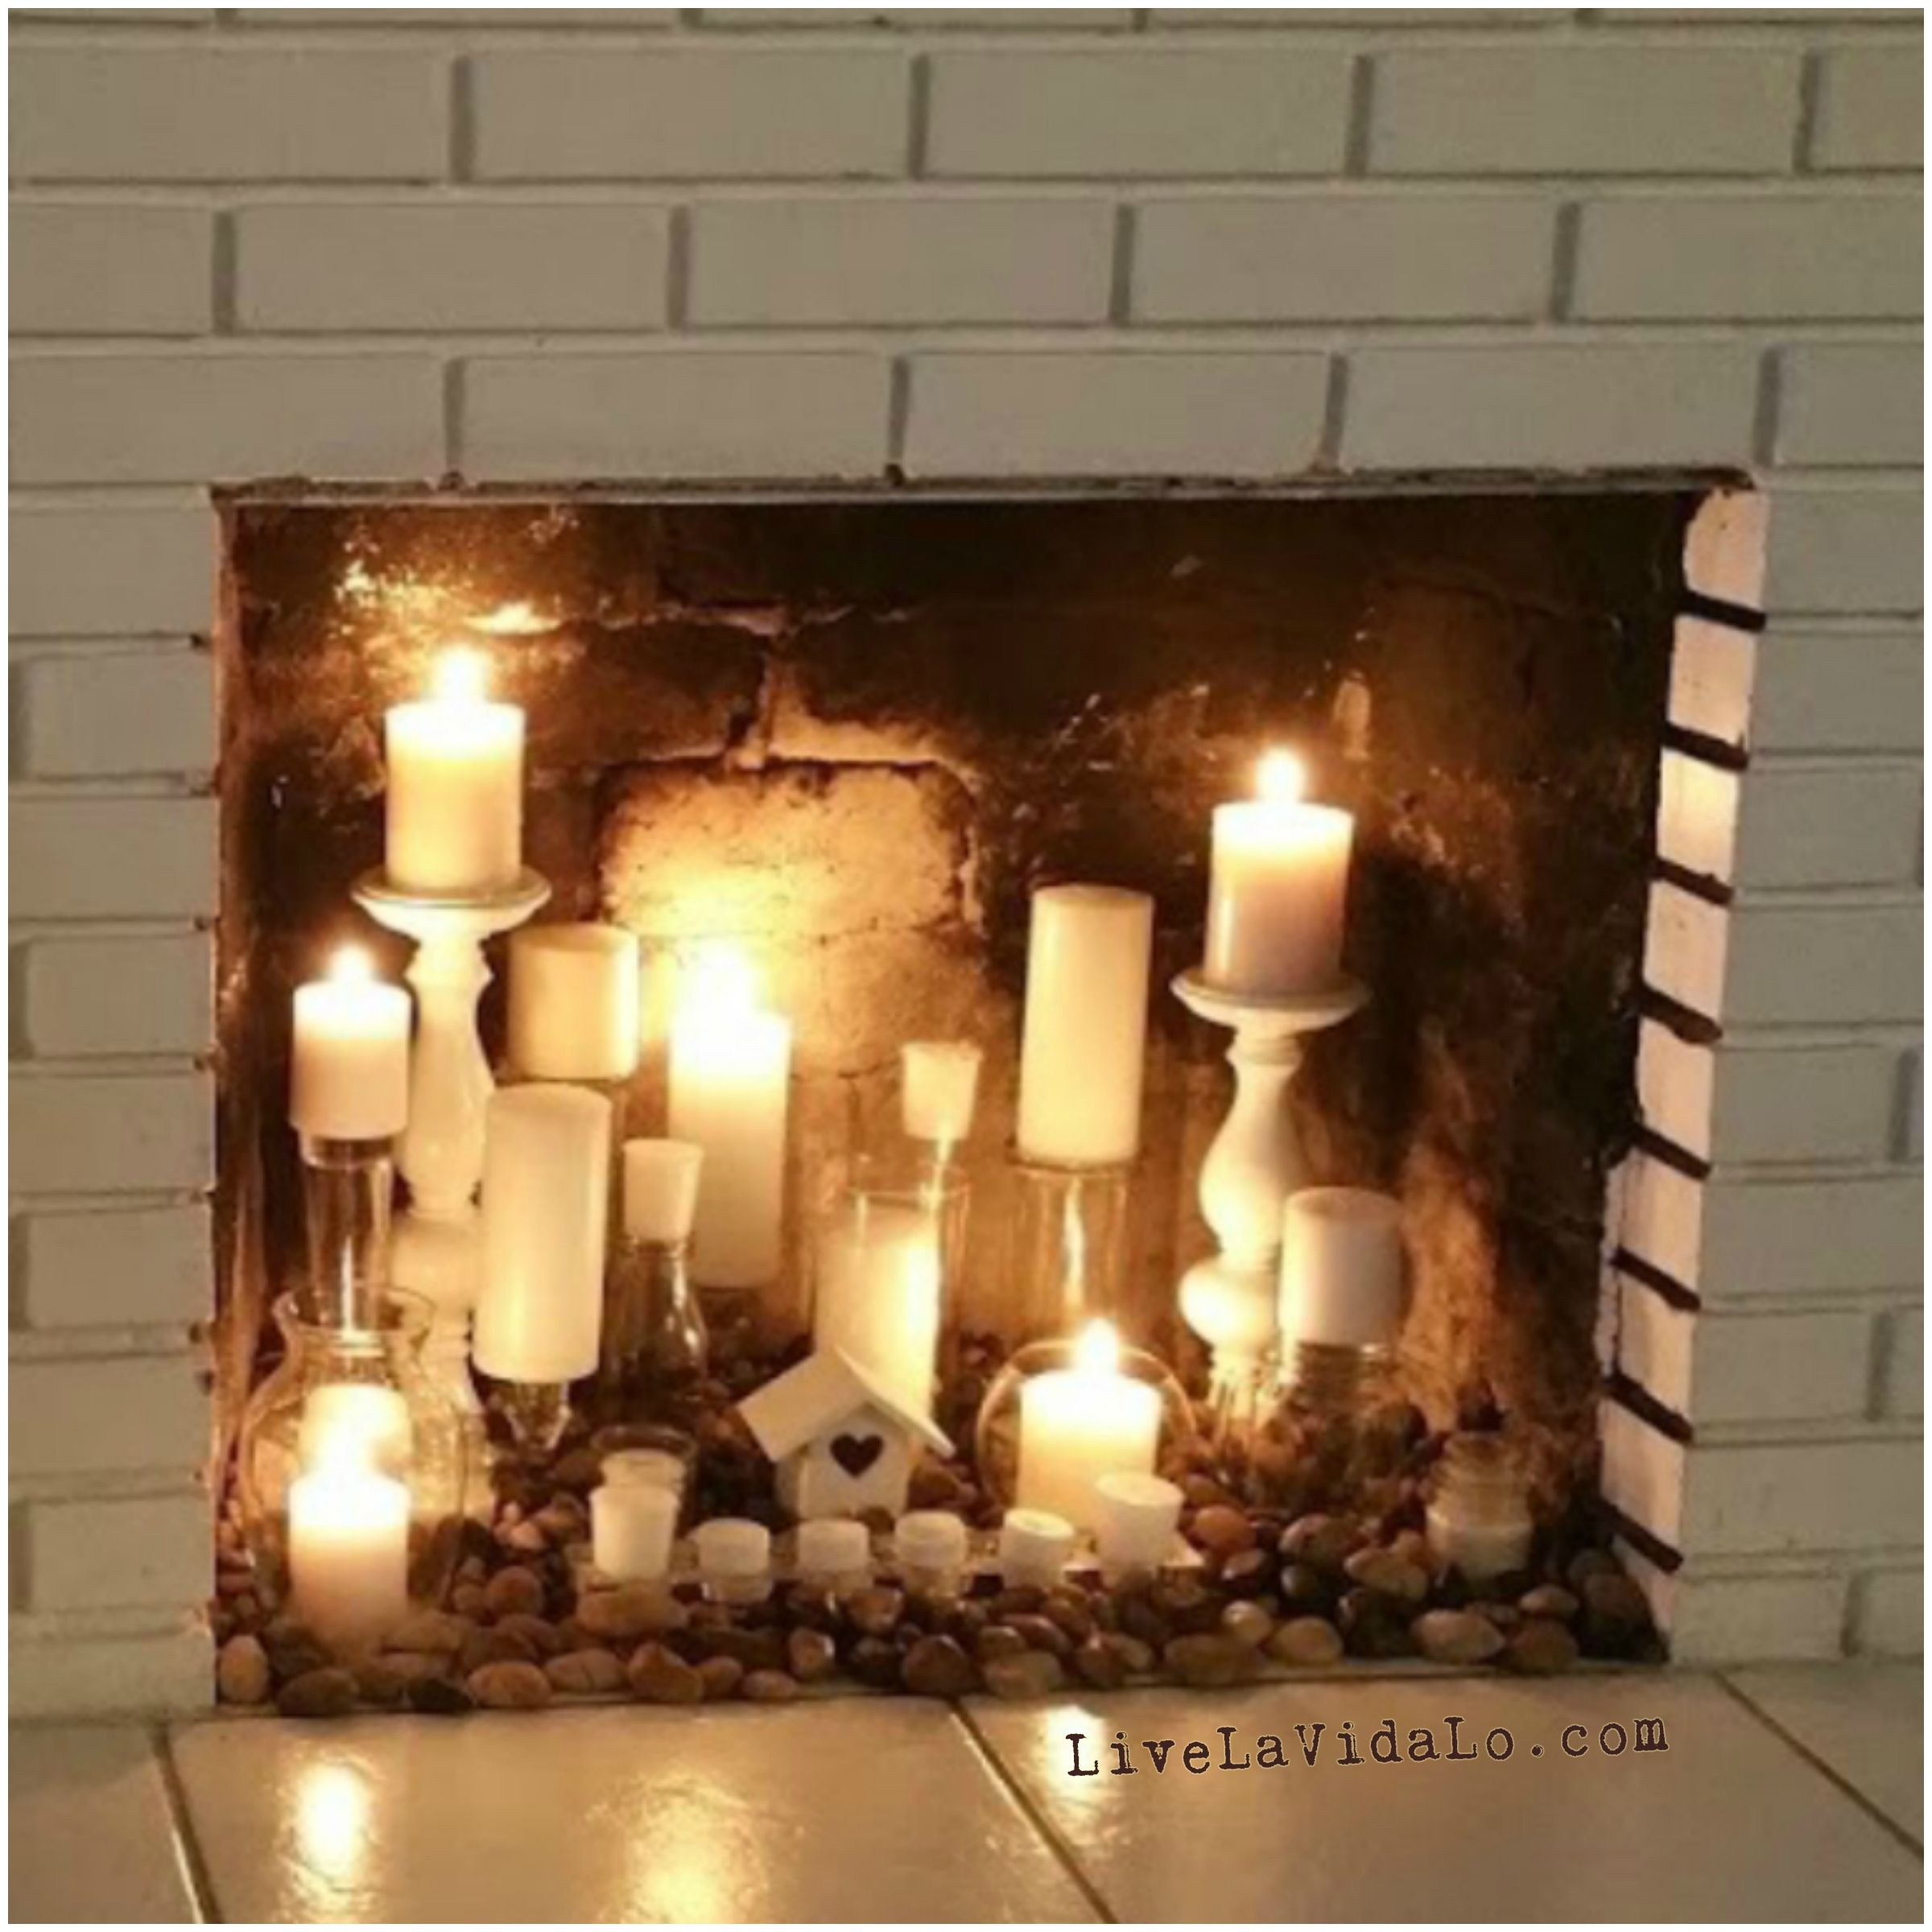 Rustic Faux Fireplace Candle Display Livin 39 La Vida Lo Living Room Pinterest Fireplace